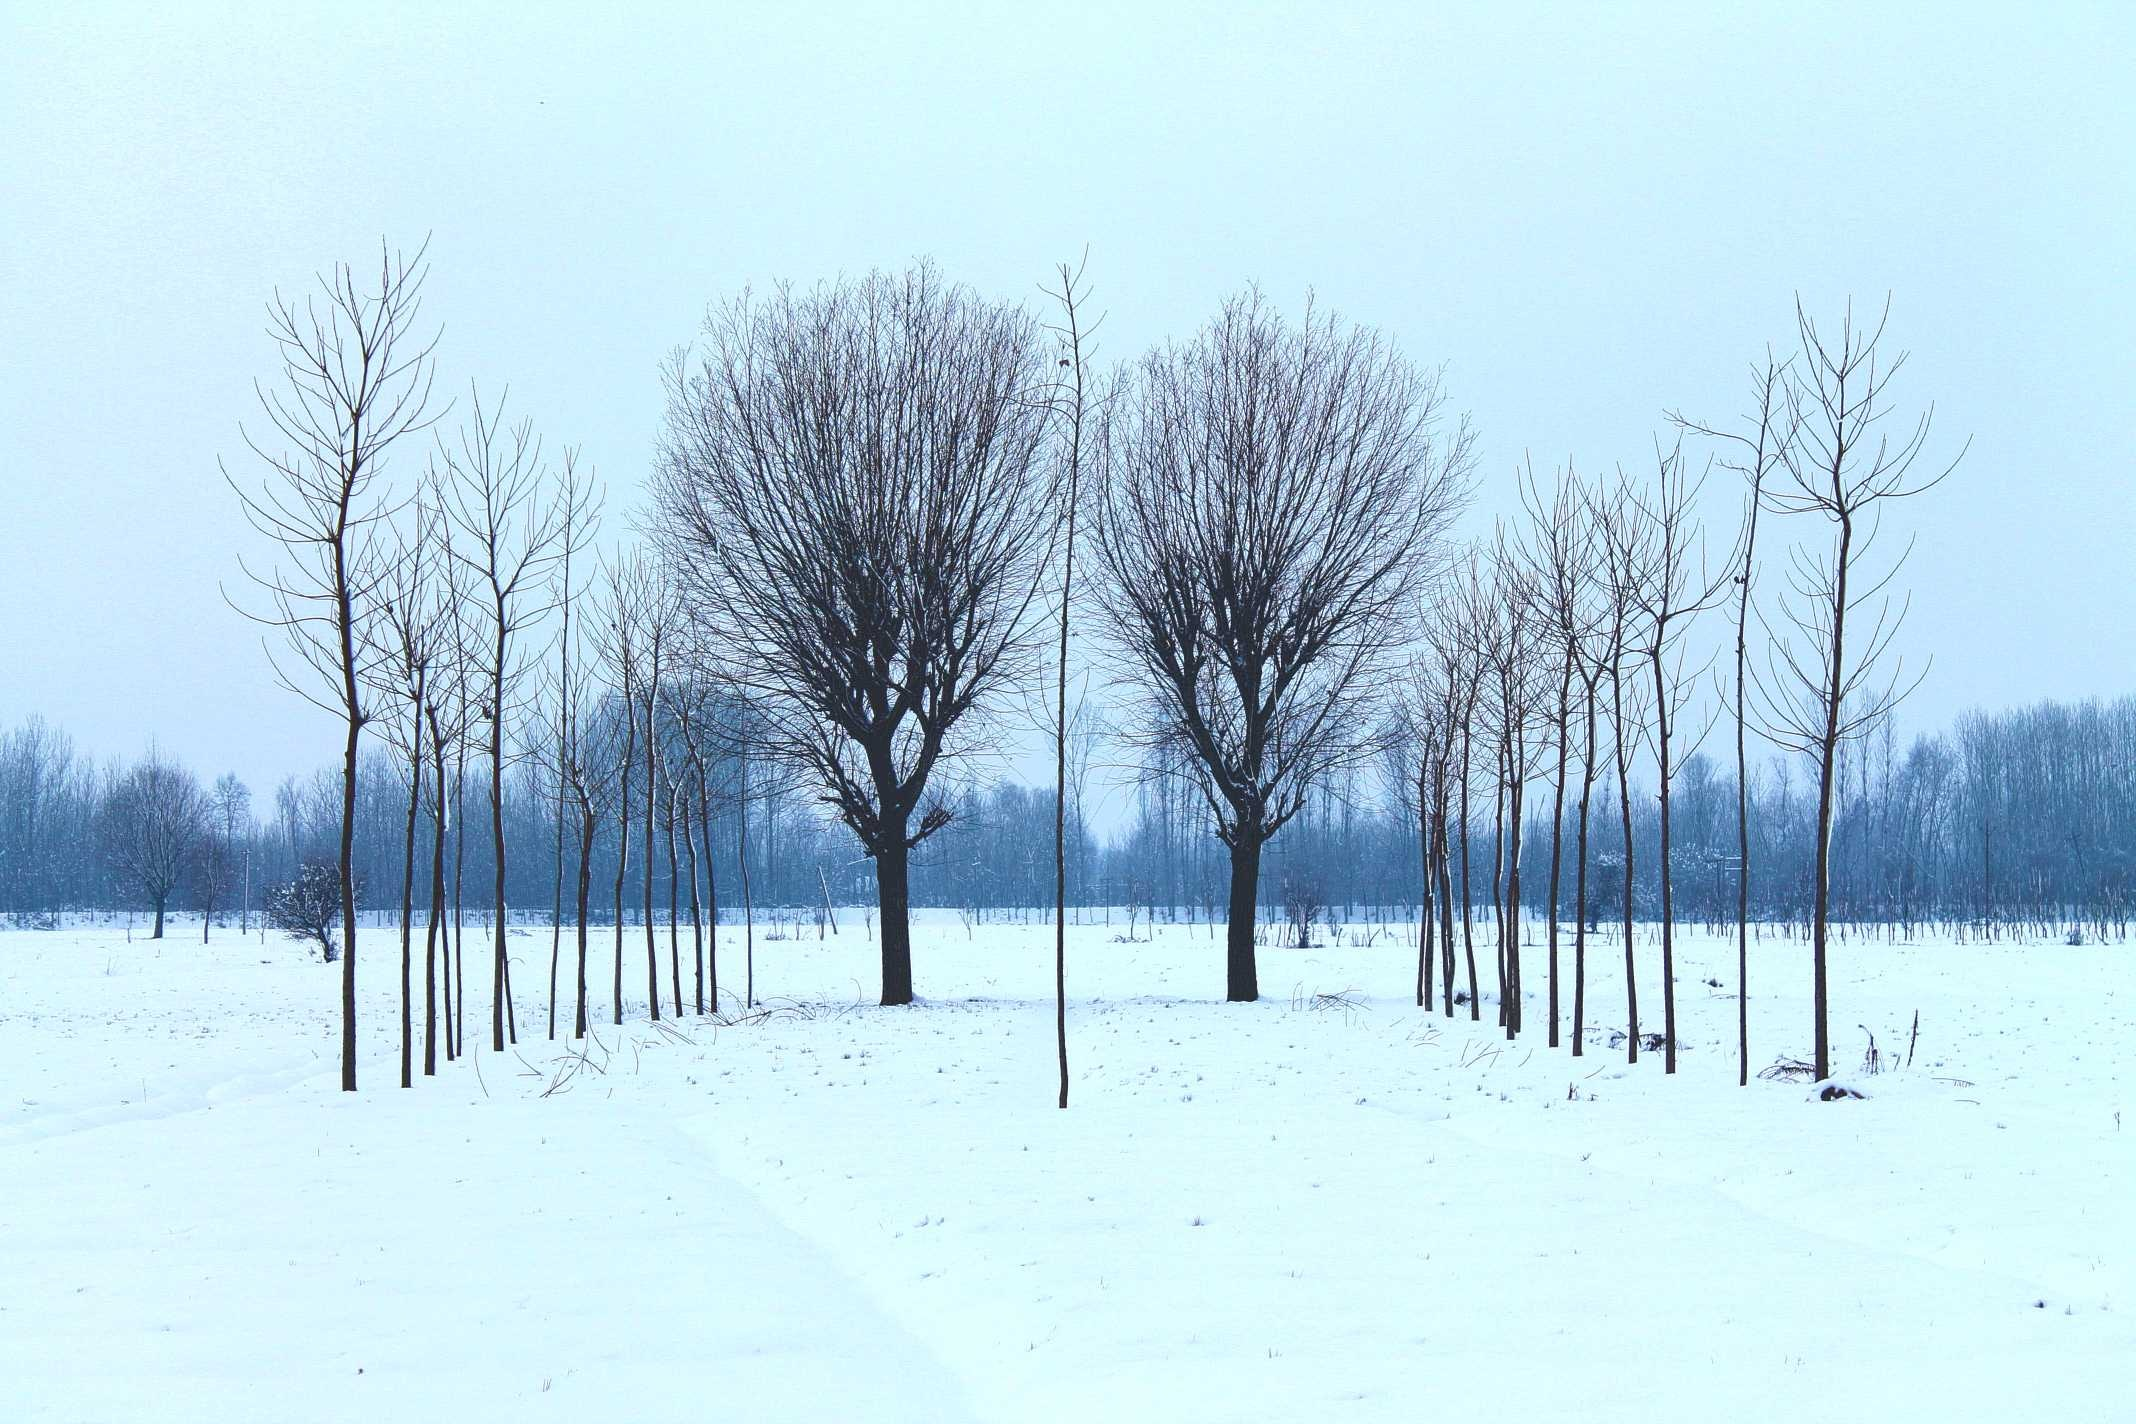 Trees form symmetric lines in a snowy winter field